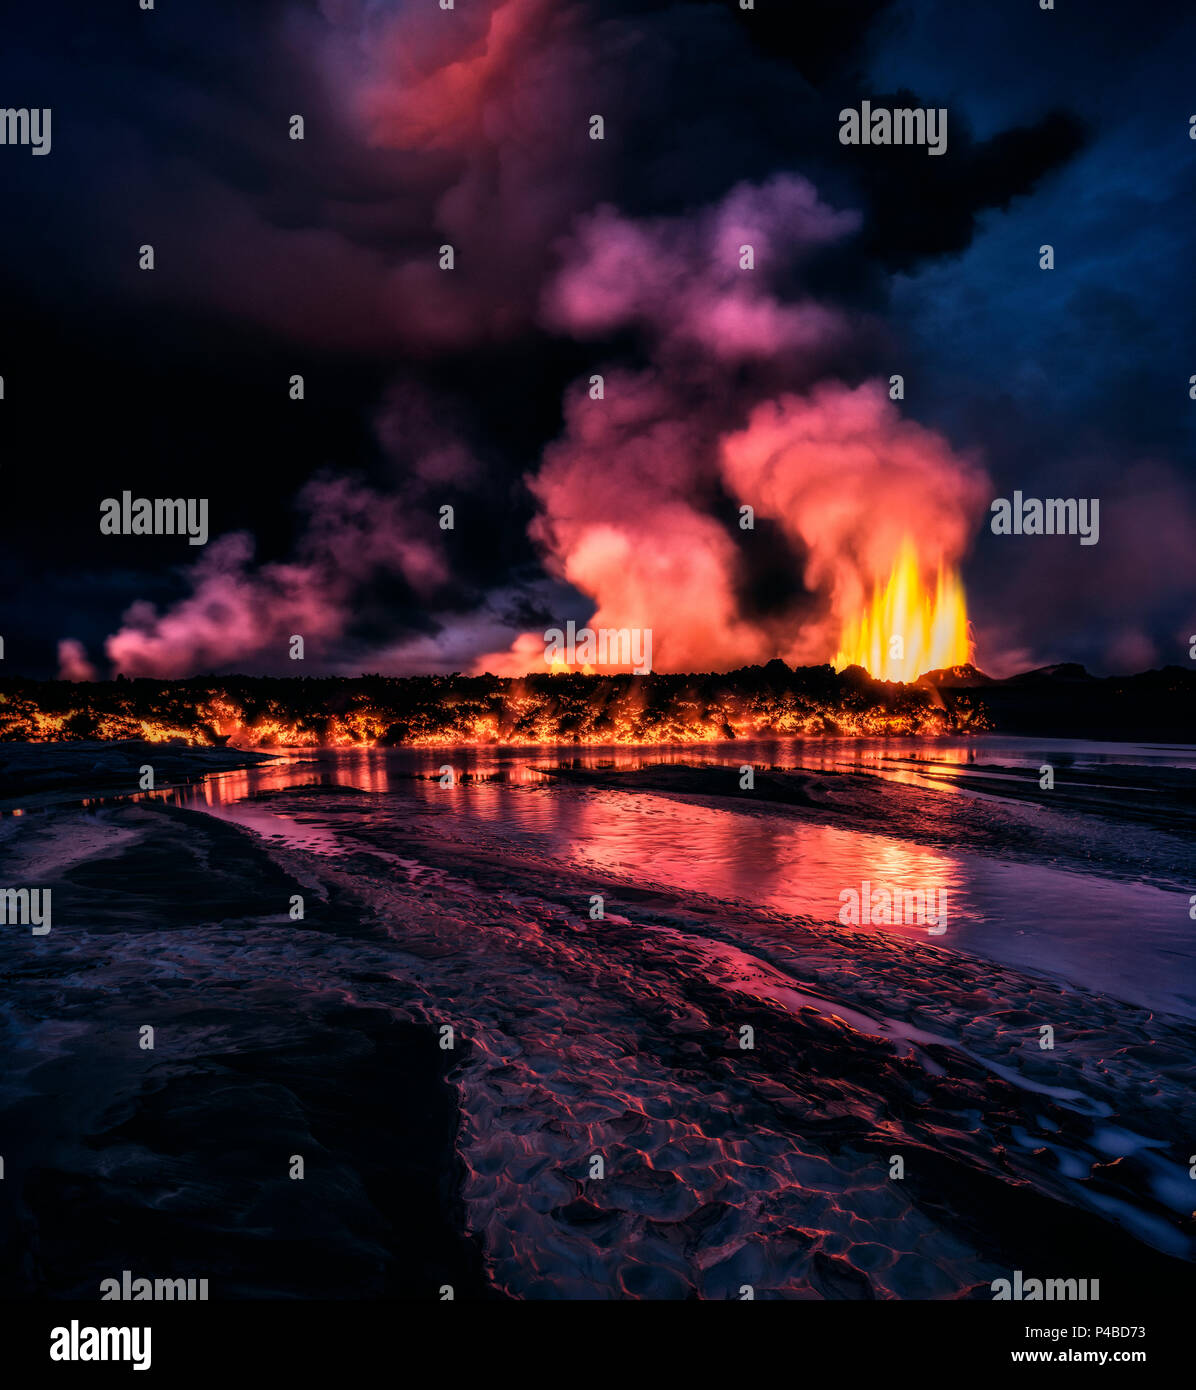 Glowing lava from the eruption at the Holuhraun Fissure, near the Bardarbunga Volcano, Iceland. August 29, 2014, a fissure eruption started in Holuhraun at the northern end of a magma intrusion, which had moved progressively north, from the Bardarbunga volcano. Sept 2, 2014 - Stock Image